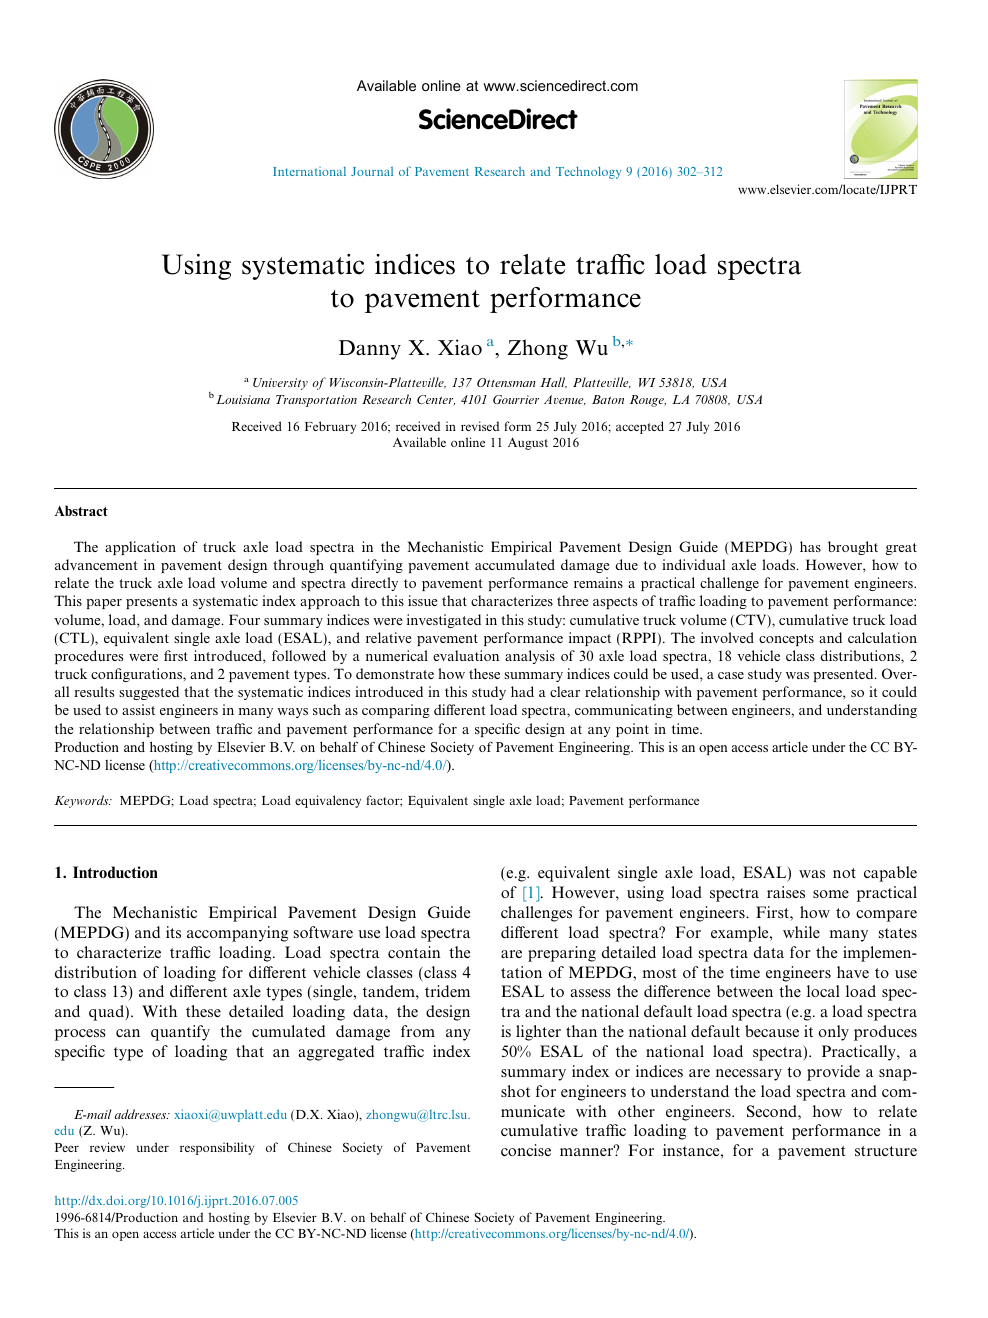 Using Systematic Indices To Relate Traffic Load Spectra To Pavement Performance Topic Of Research Paper In Civil Engineering Download Scholarly Article Pdf And Read For Free On Cyberleninka Open Science Hub